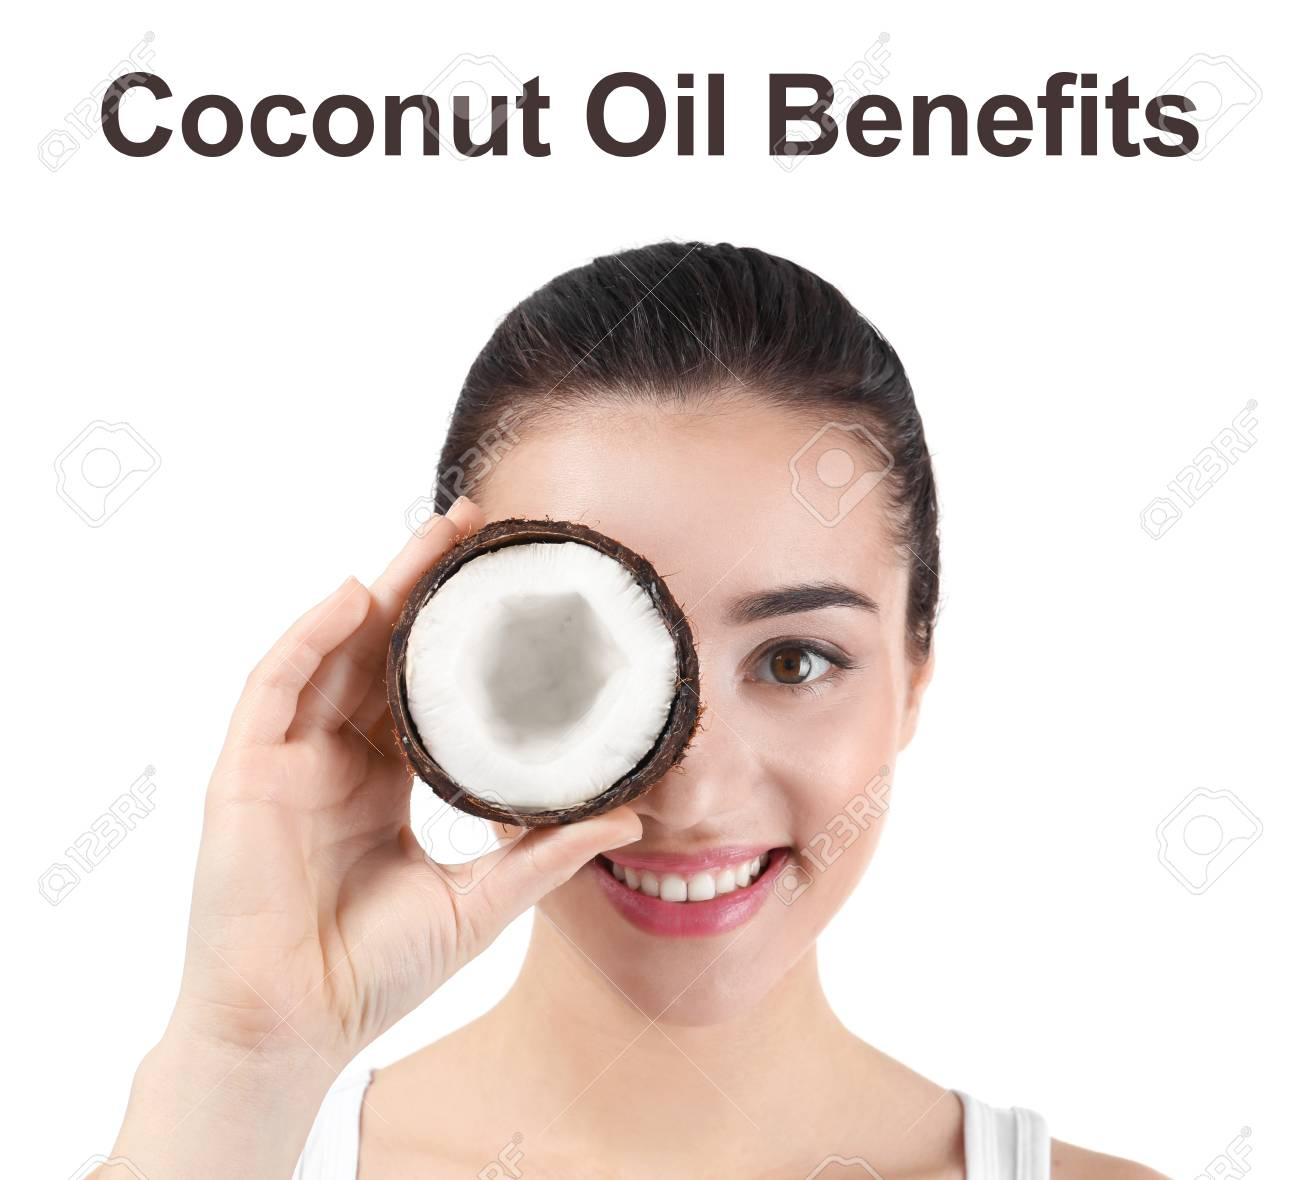 Text COCONUT OIL BENEFITS and young woman holding nut on white